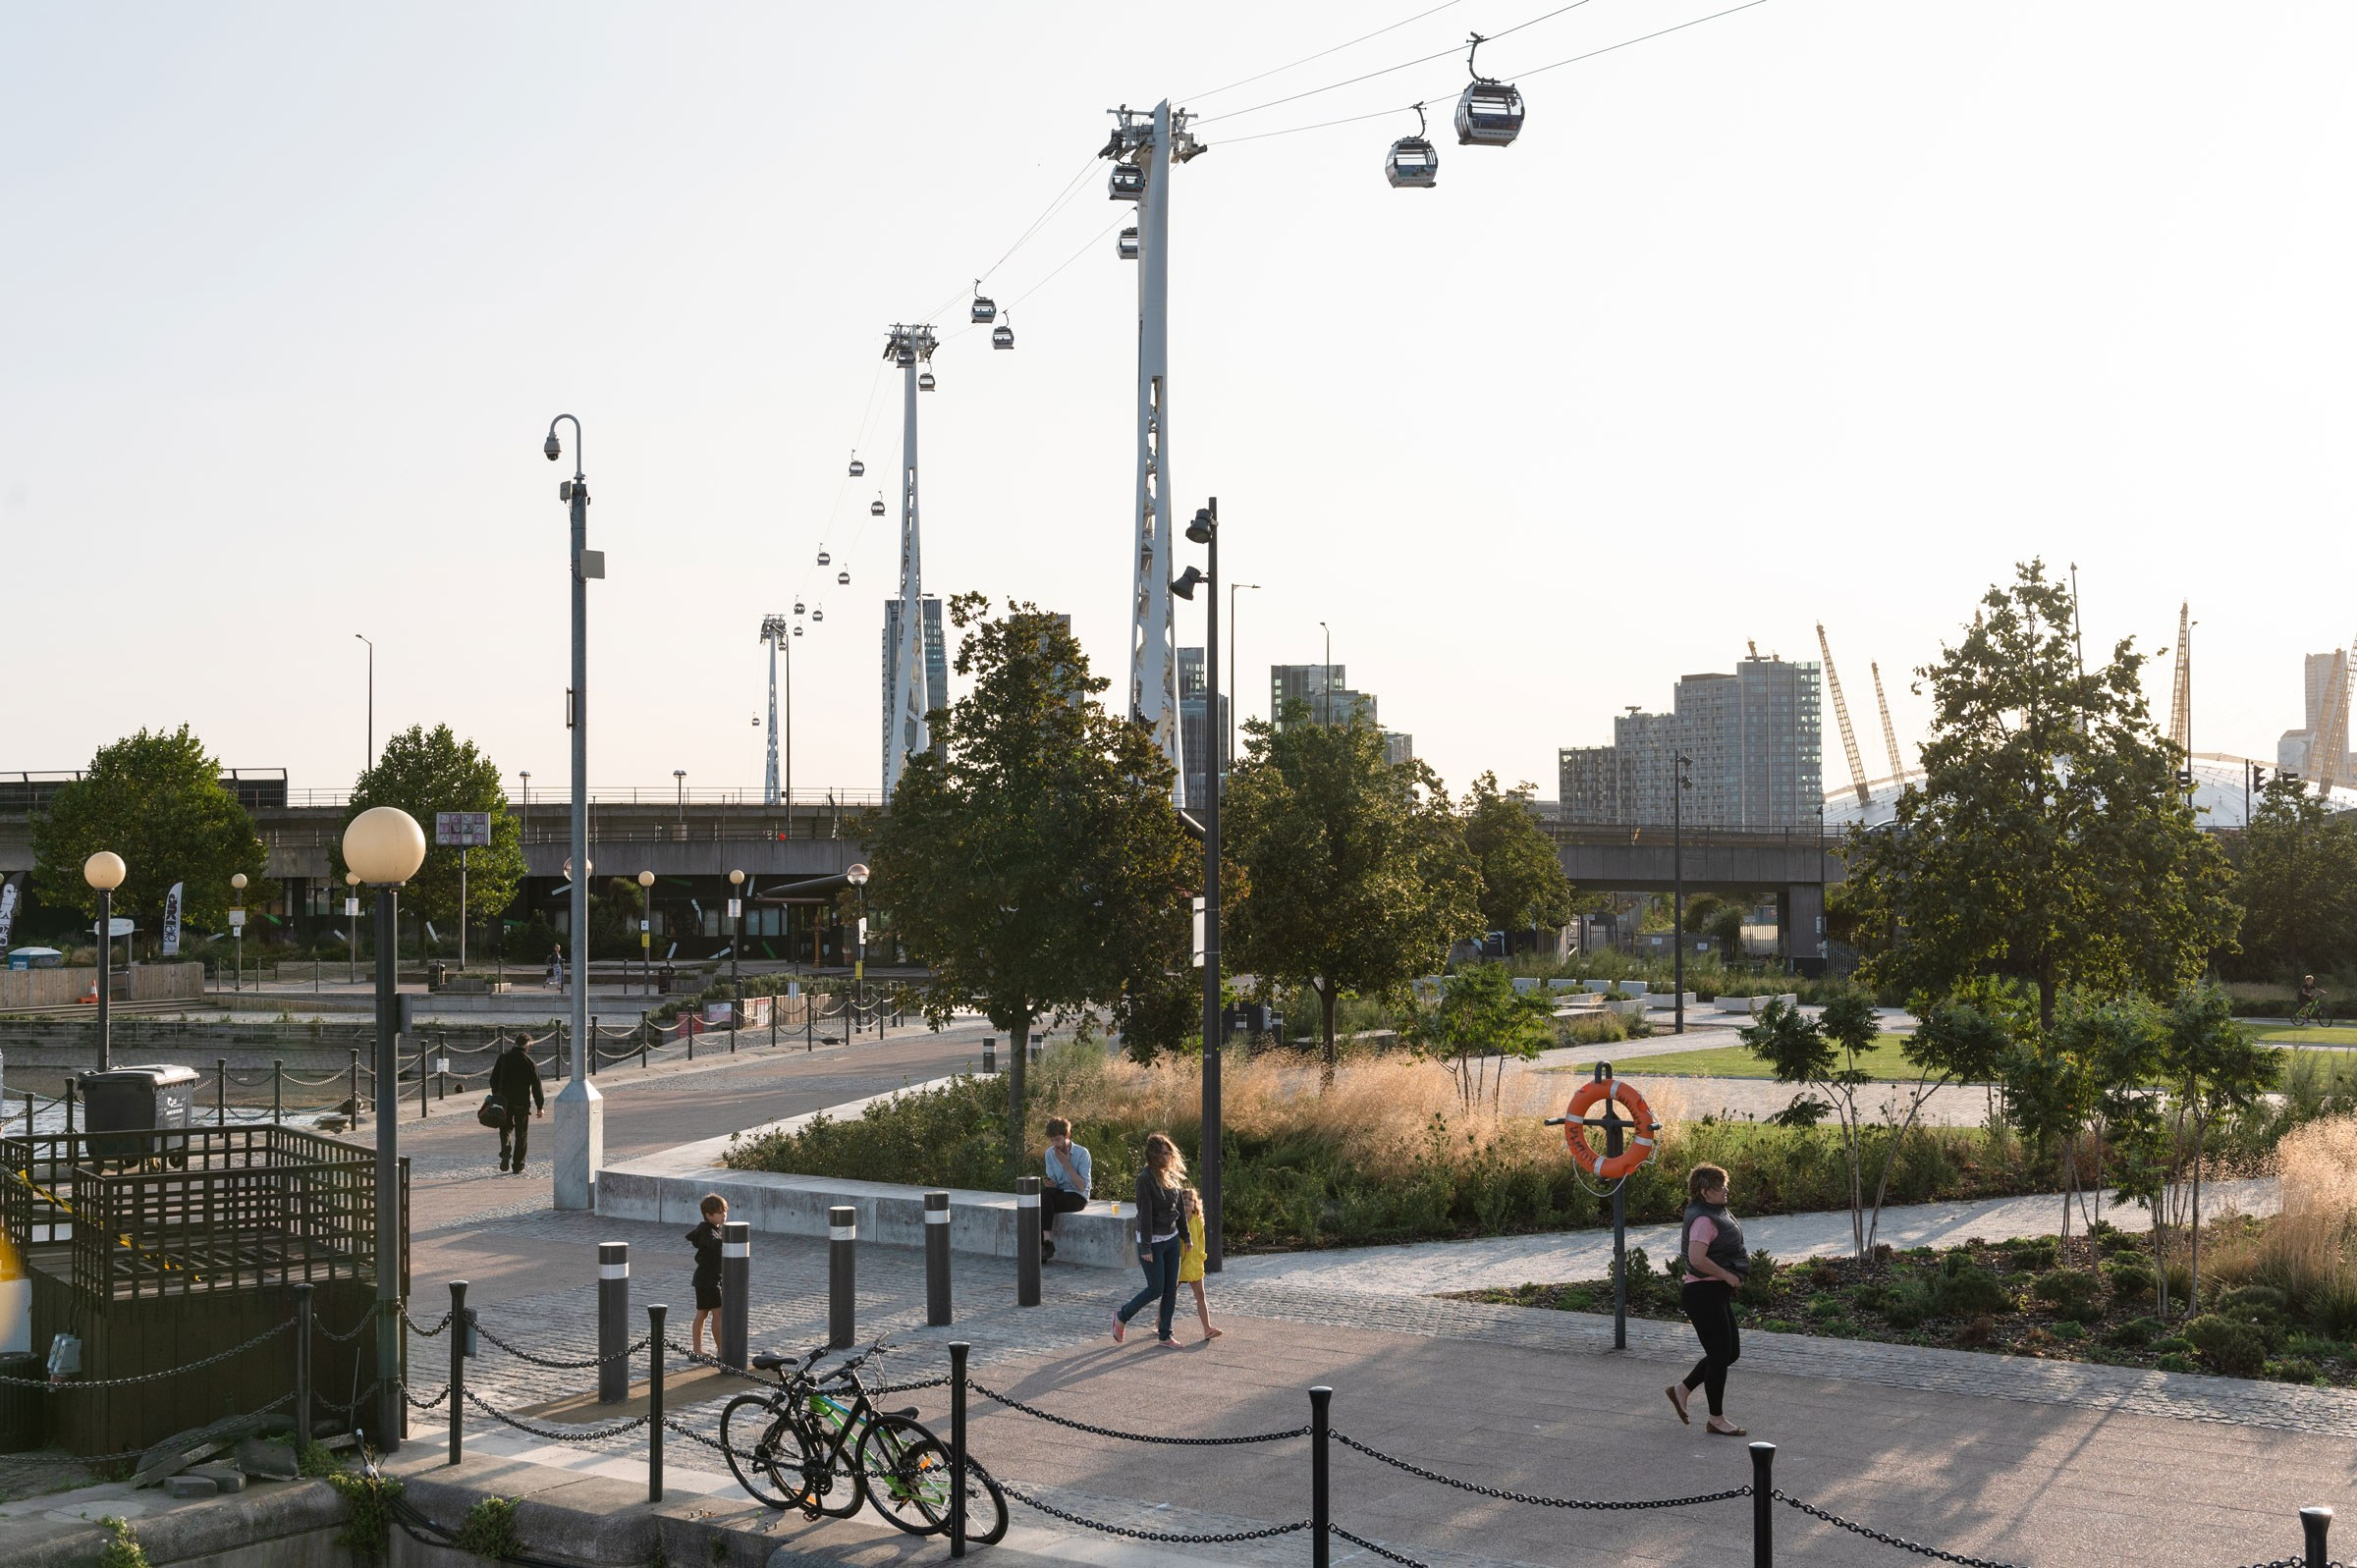 Scenic view of Royal Victoria Docks with people and cable cars overhead